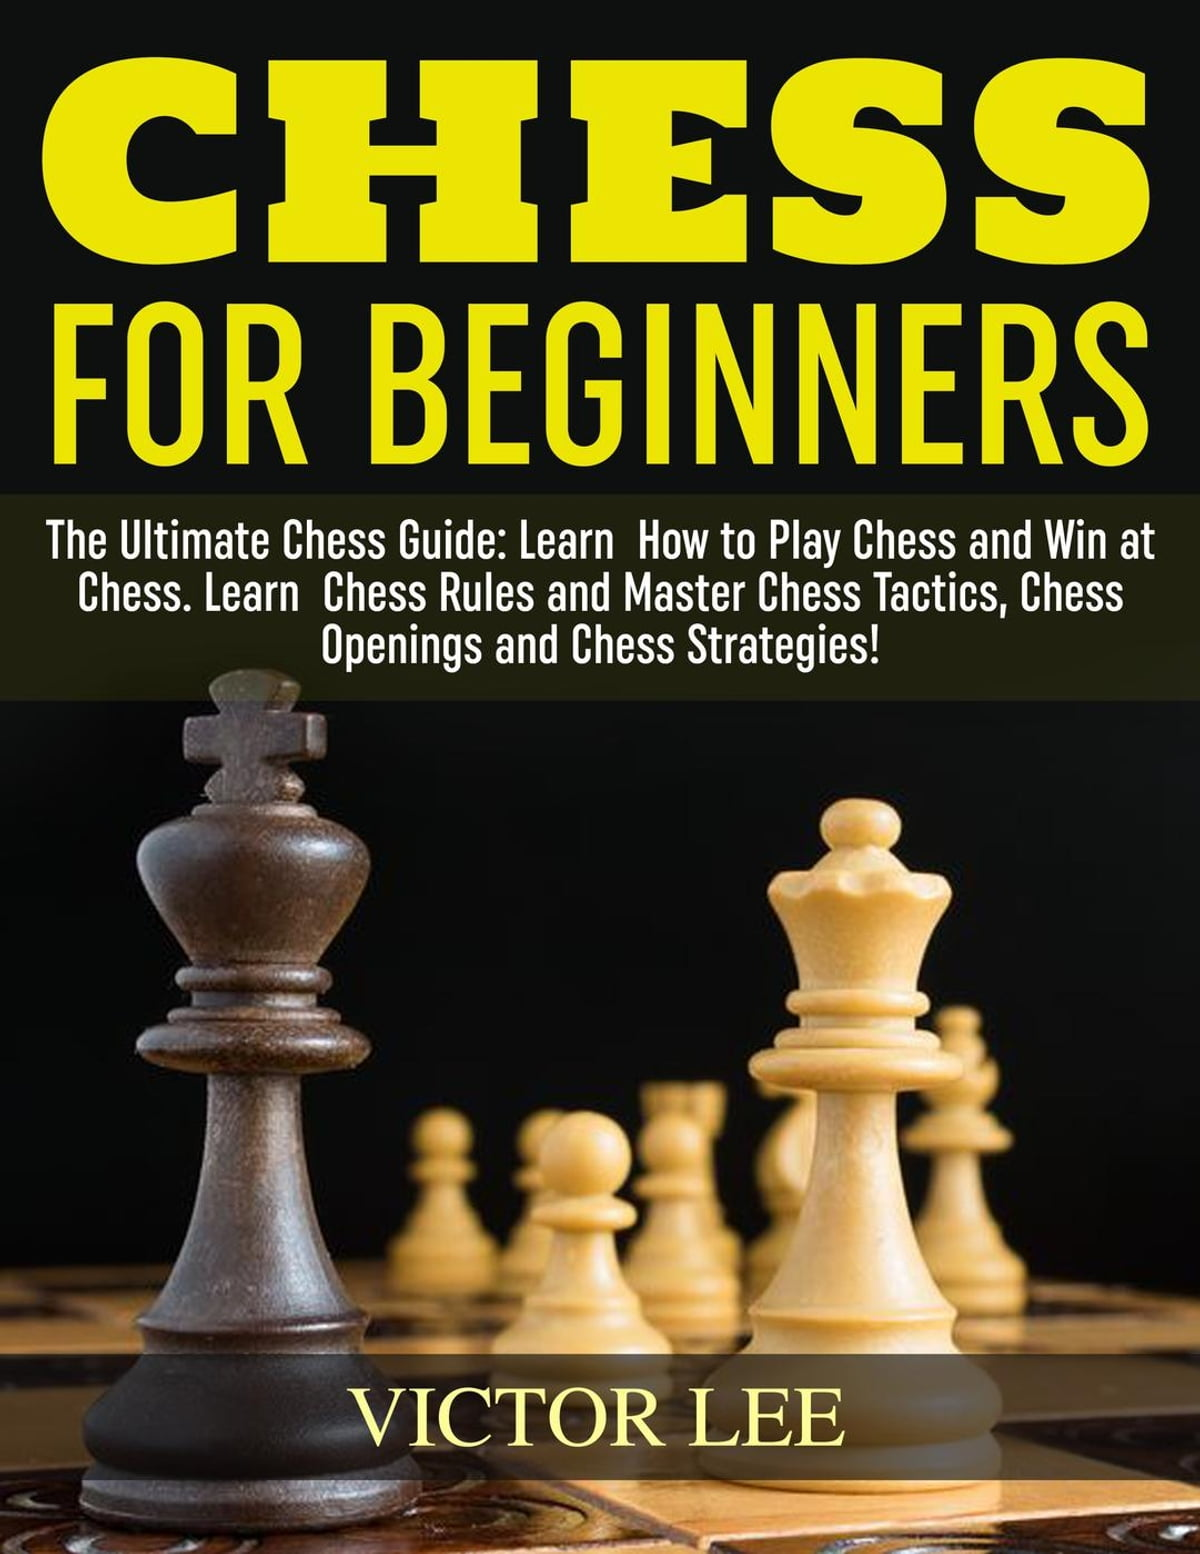 Chess How To Play Chess For Beginners Learn How To Win At Chess Master Chess Tactics Chess Openings And Chess Strategies Ebook By Victor Lee - tommy games roblox hack